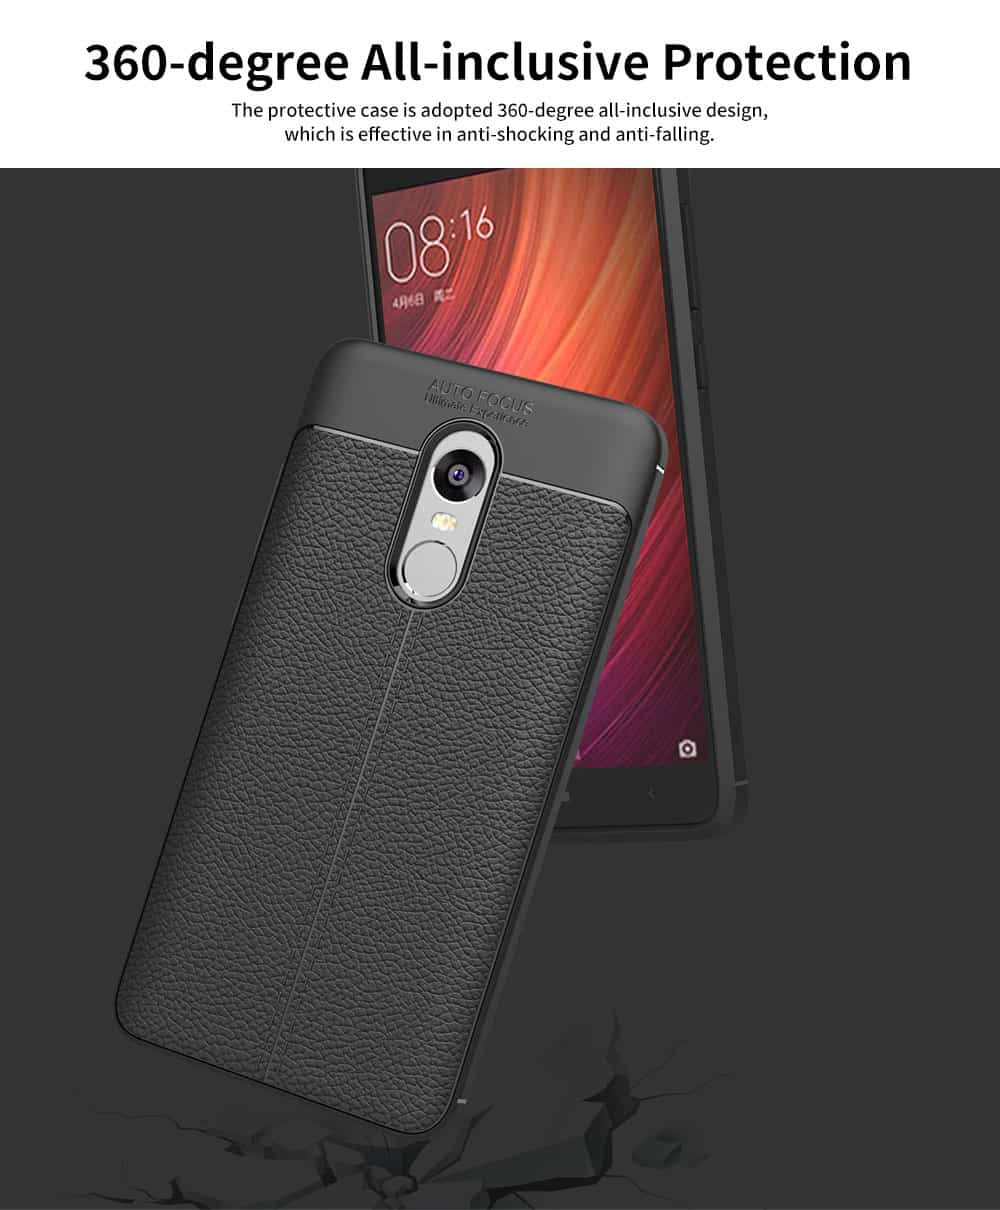 Mobile Phone Case for RedMi 4x & Note 4x & Note 4, TPU Litchi Grain Durable Fashionable New Protective Case 2